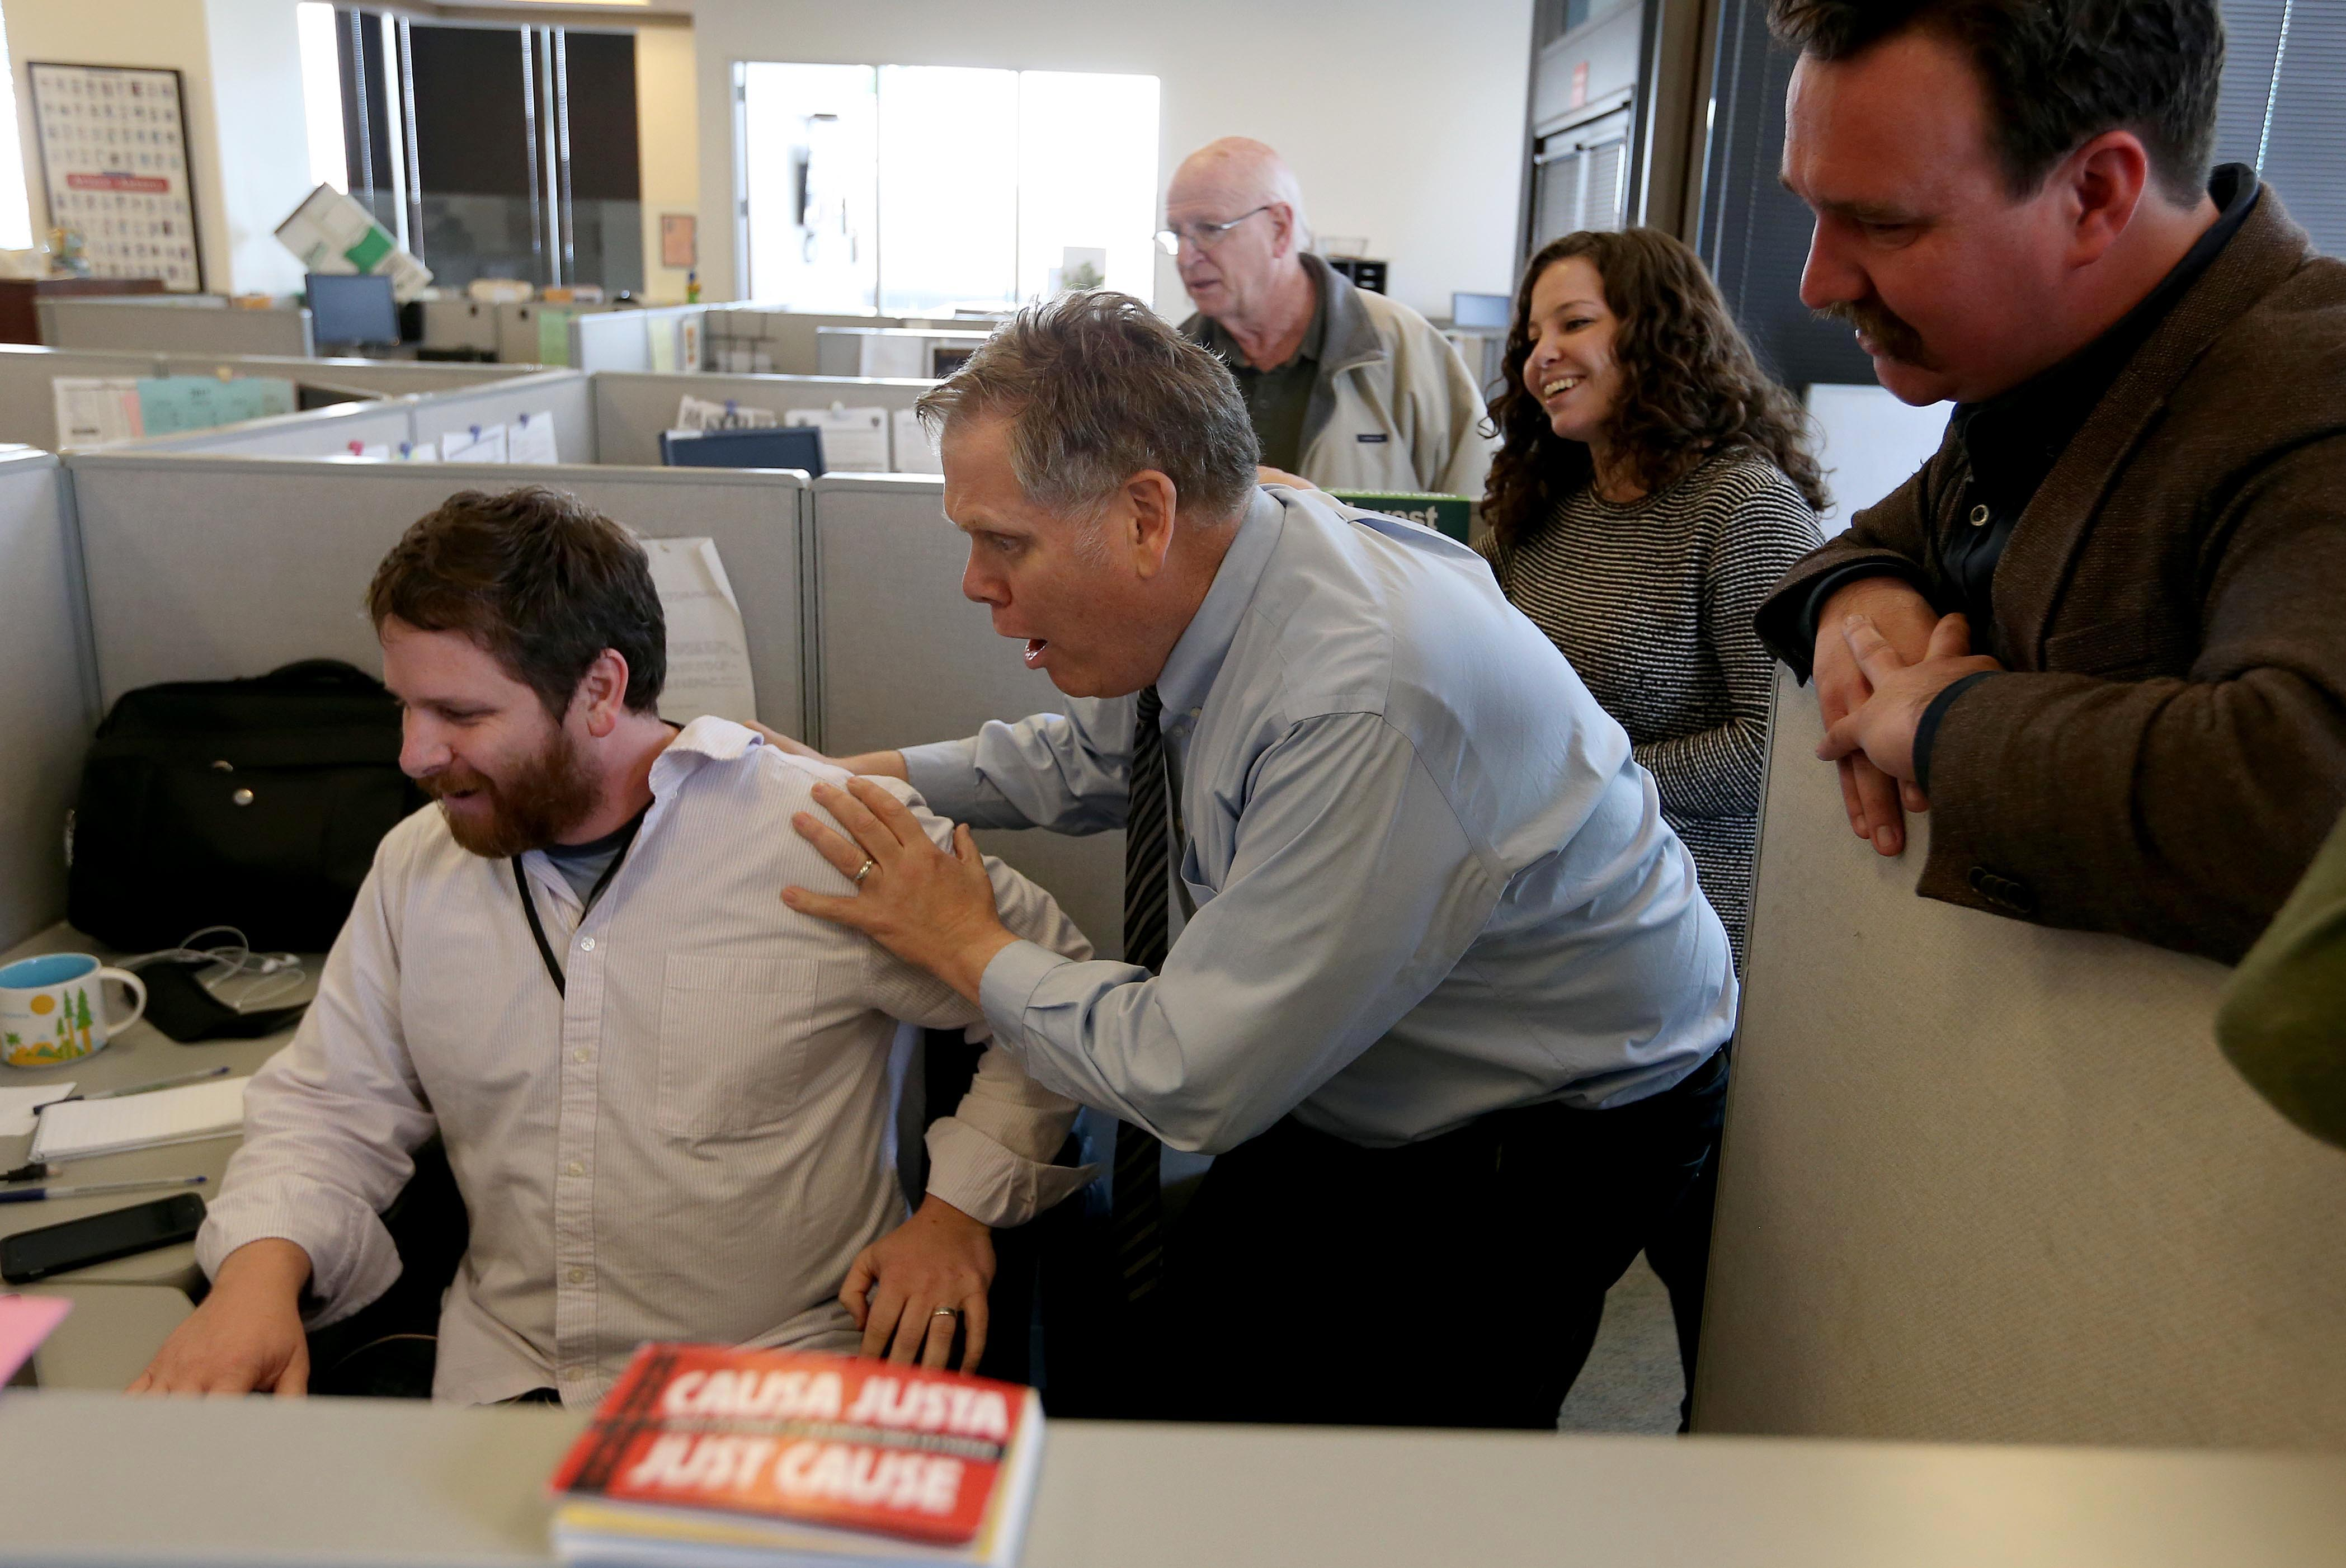 Former California Aggie editor-in-chief wins Pulitzer Prize